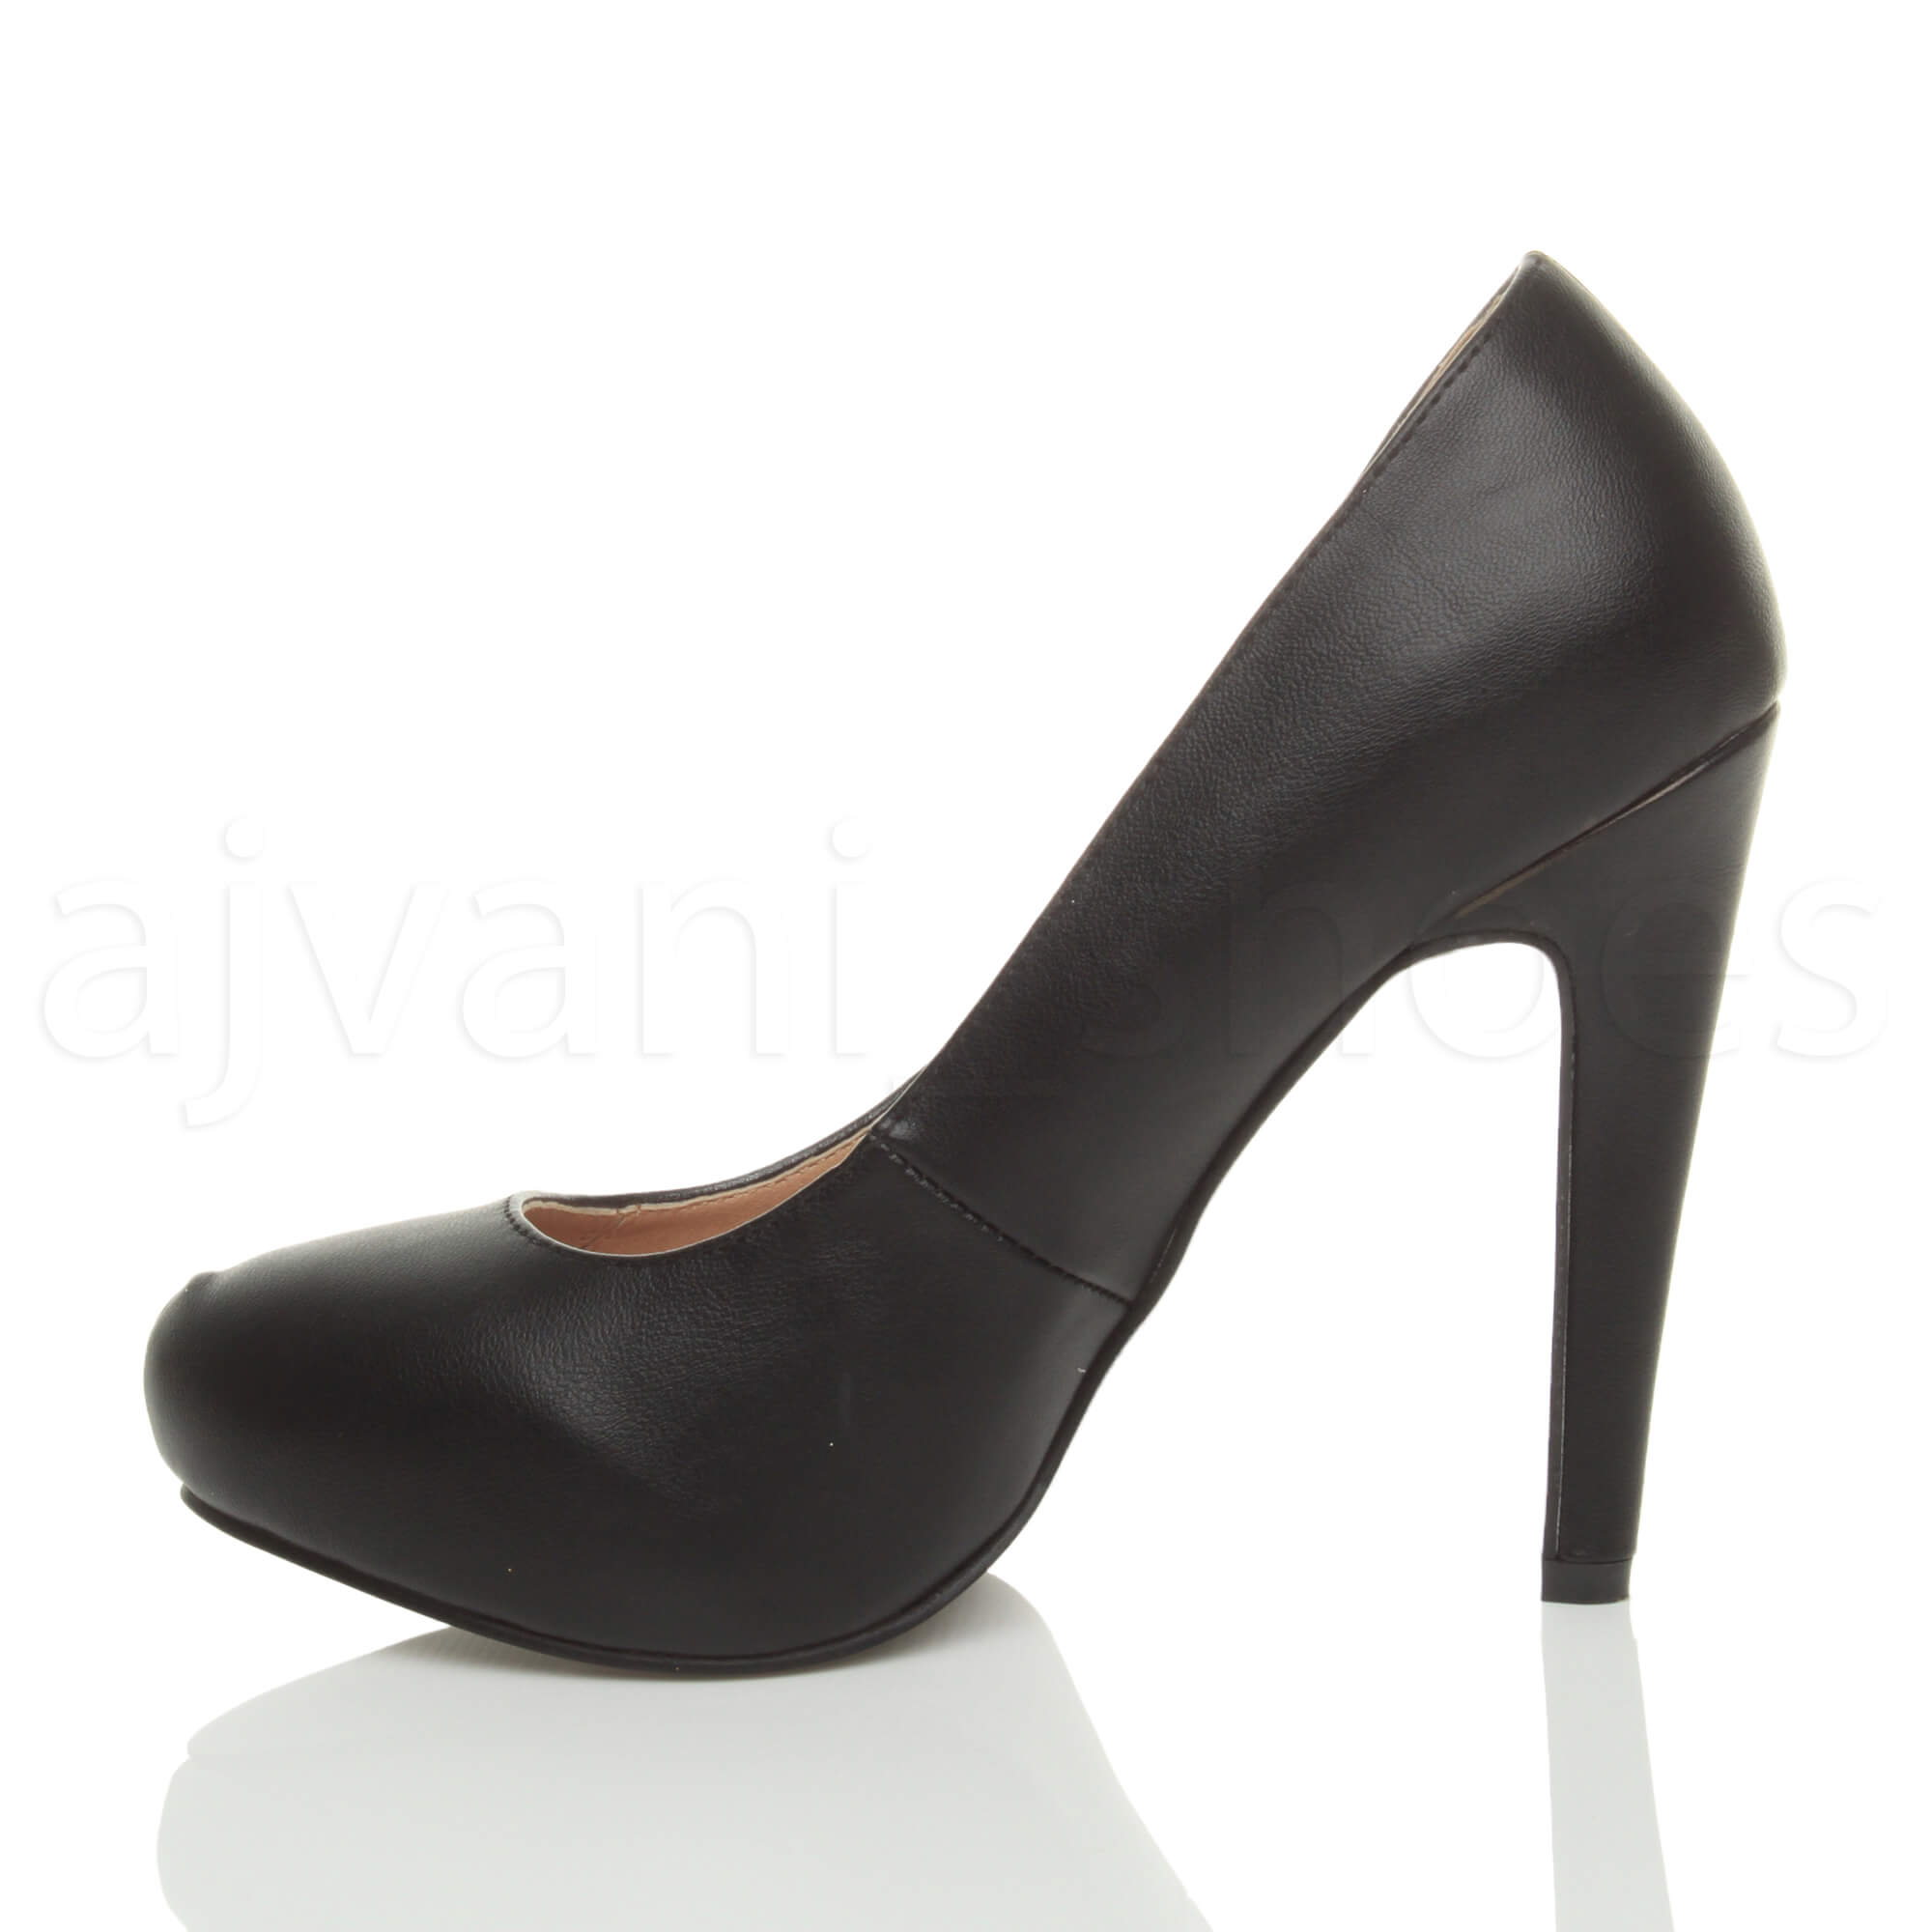 WOMENS-LADIES-HIGH-HEEL-CONCEALED-PLATFORM-COURT-SHOES-PARTY-PROM-PUMPS-SIZE thumbnail 4